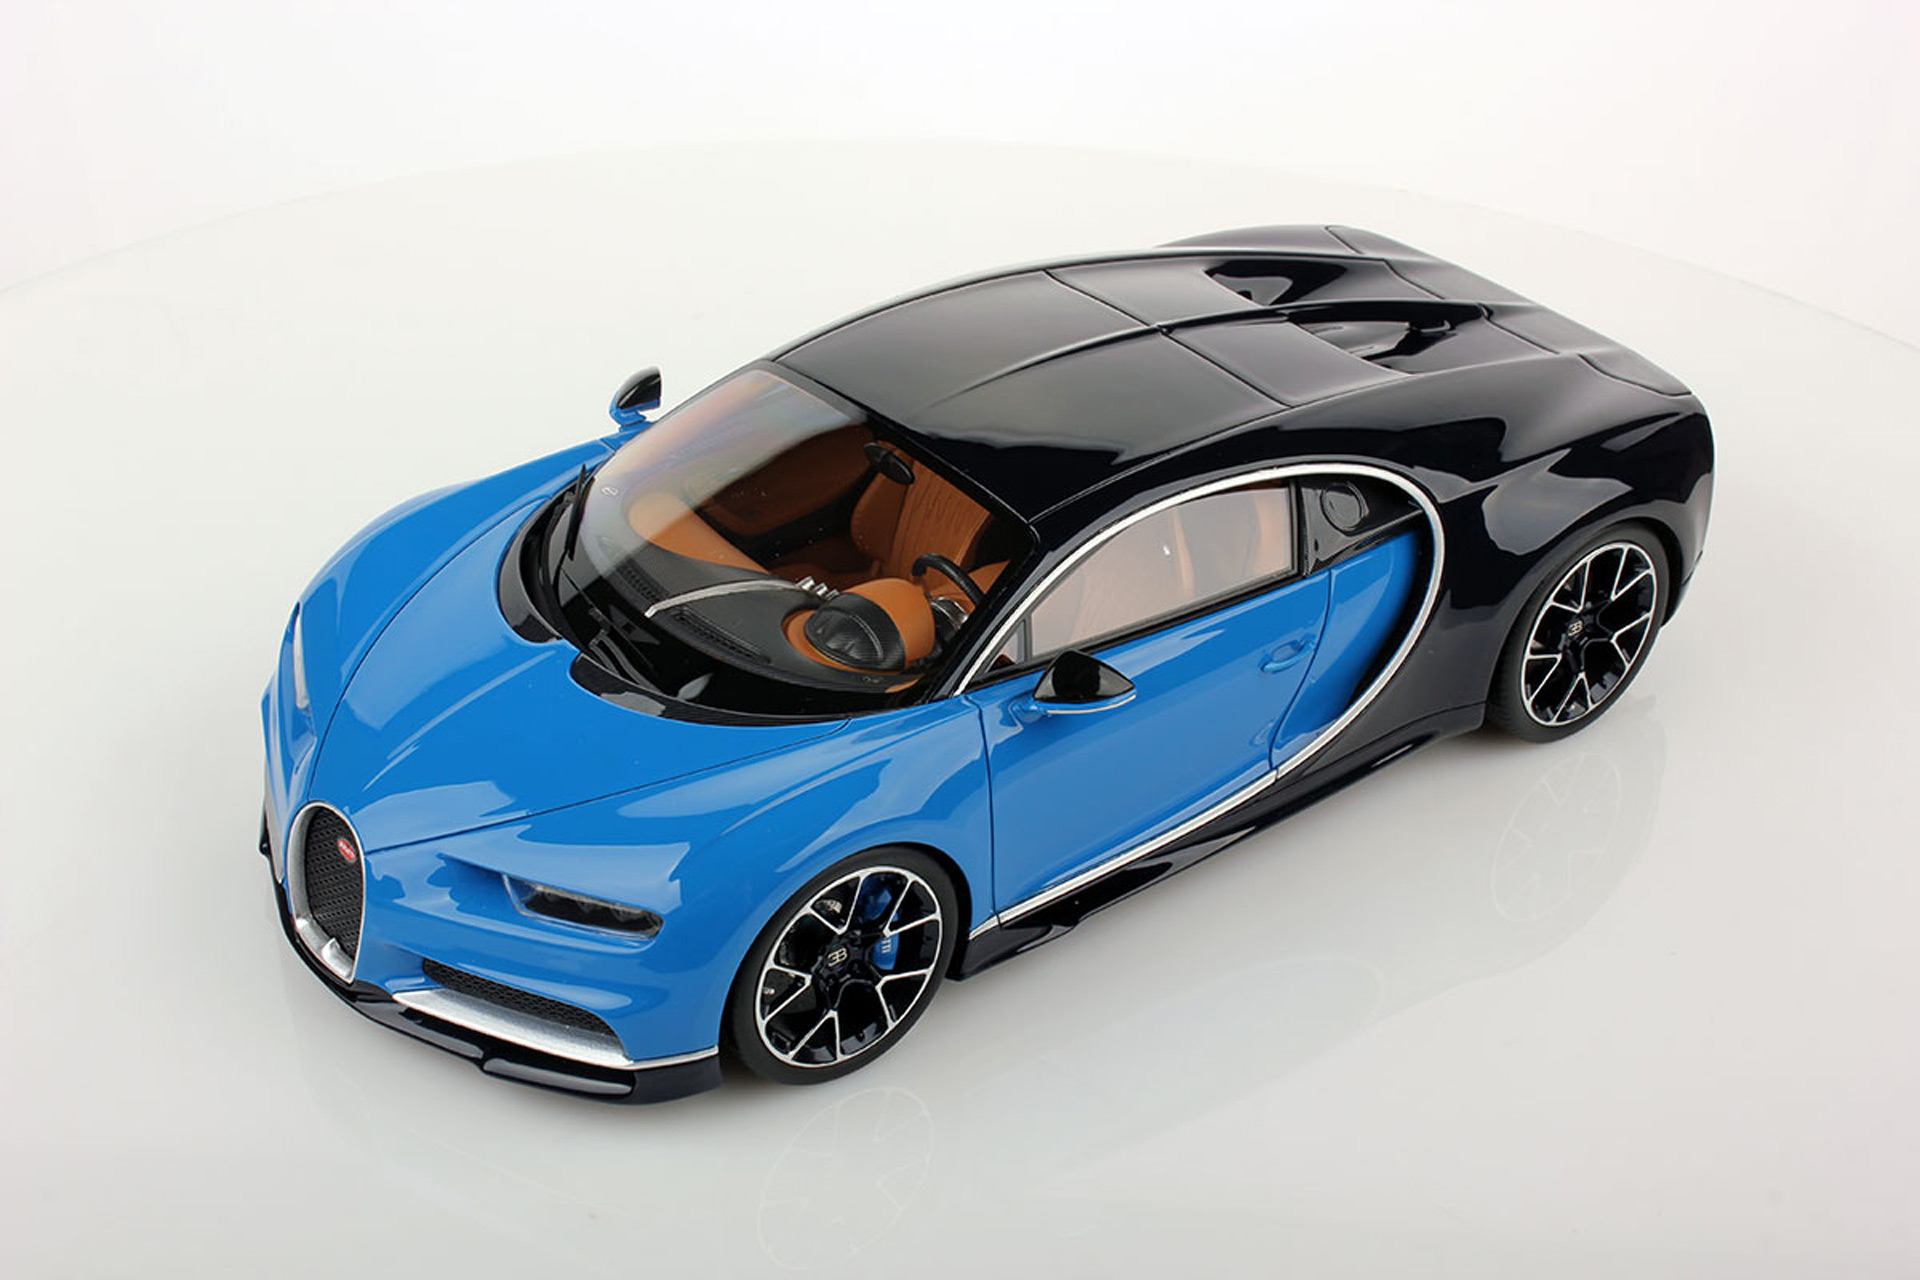 bugatti-chiron-118-scale-model-by-mr-collection-models_100562774_h Elegant Bugatti Veyron toy Car Hot Wheels Cars Trend